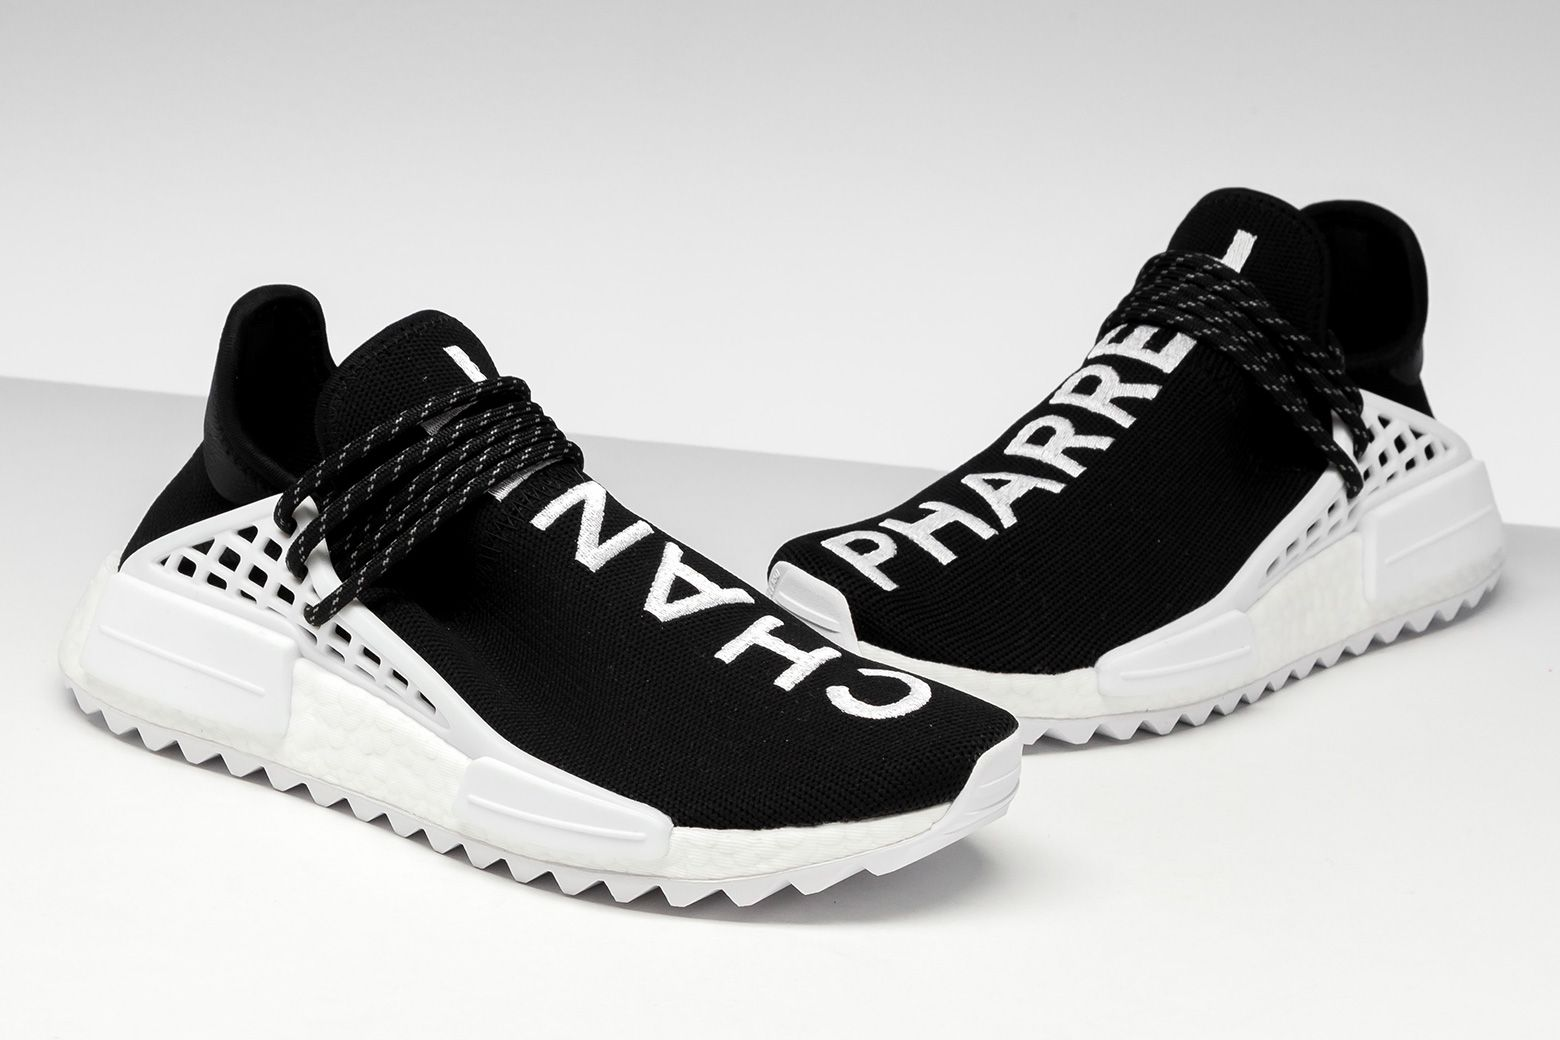 daeb1218da5 Rate the Chanel x Pharrell x Adidas NMD from 1 - 10.